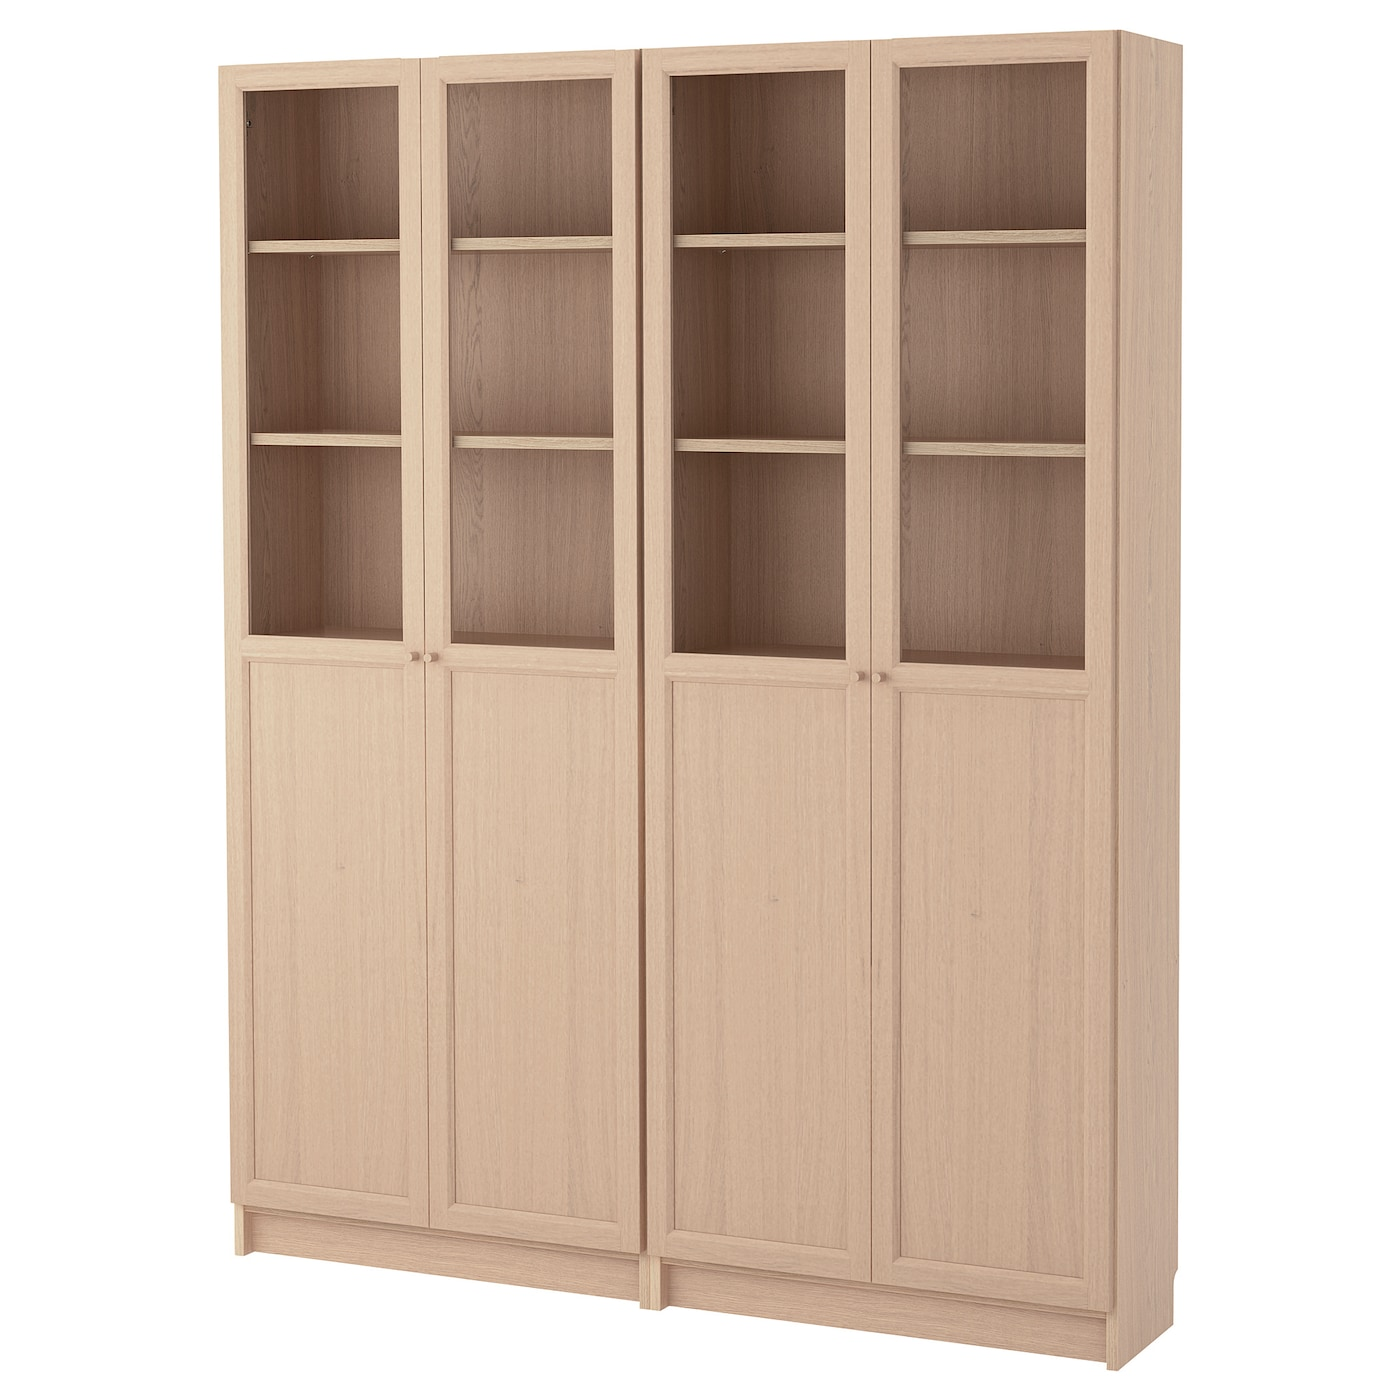 Merveilleux IKEA BILLY/OXBERG Bookcase Combination With Doors